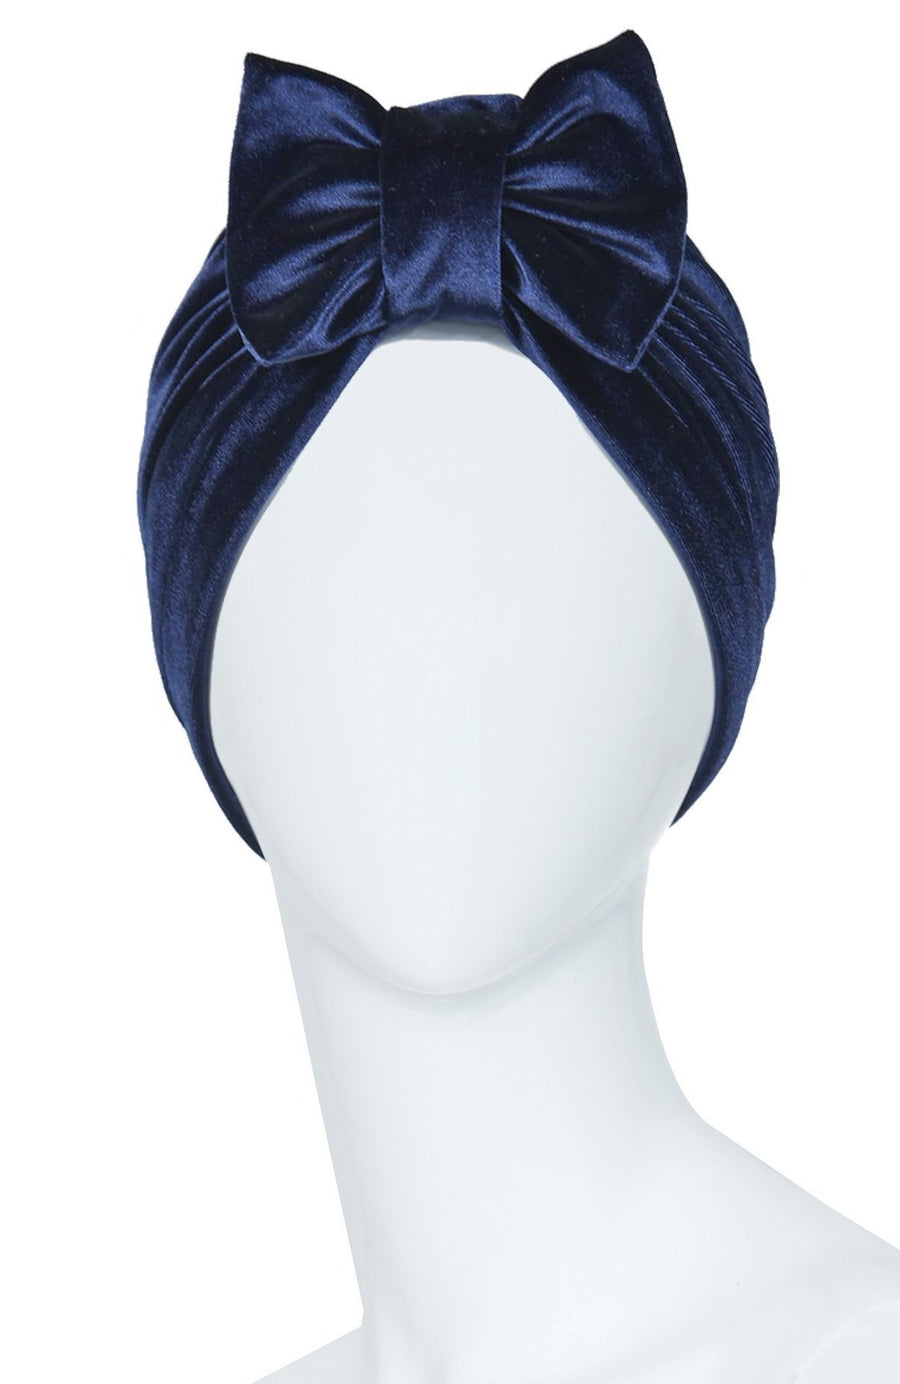 women turban headwrap blue velvet with bow